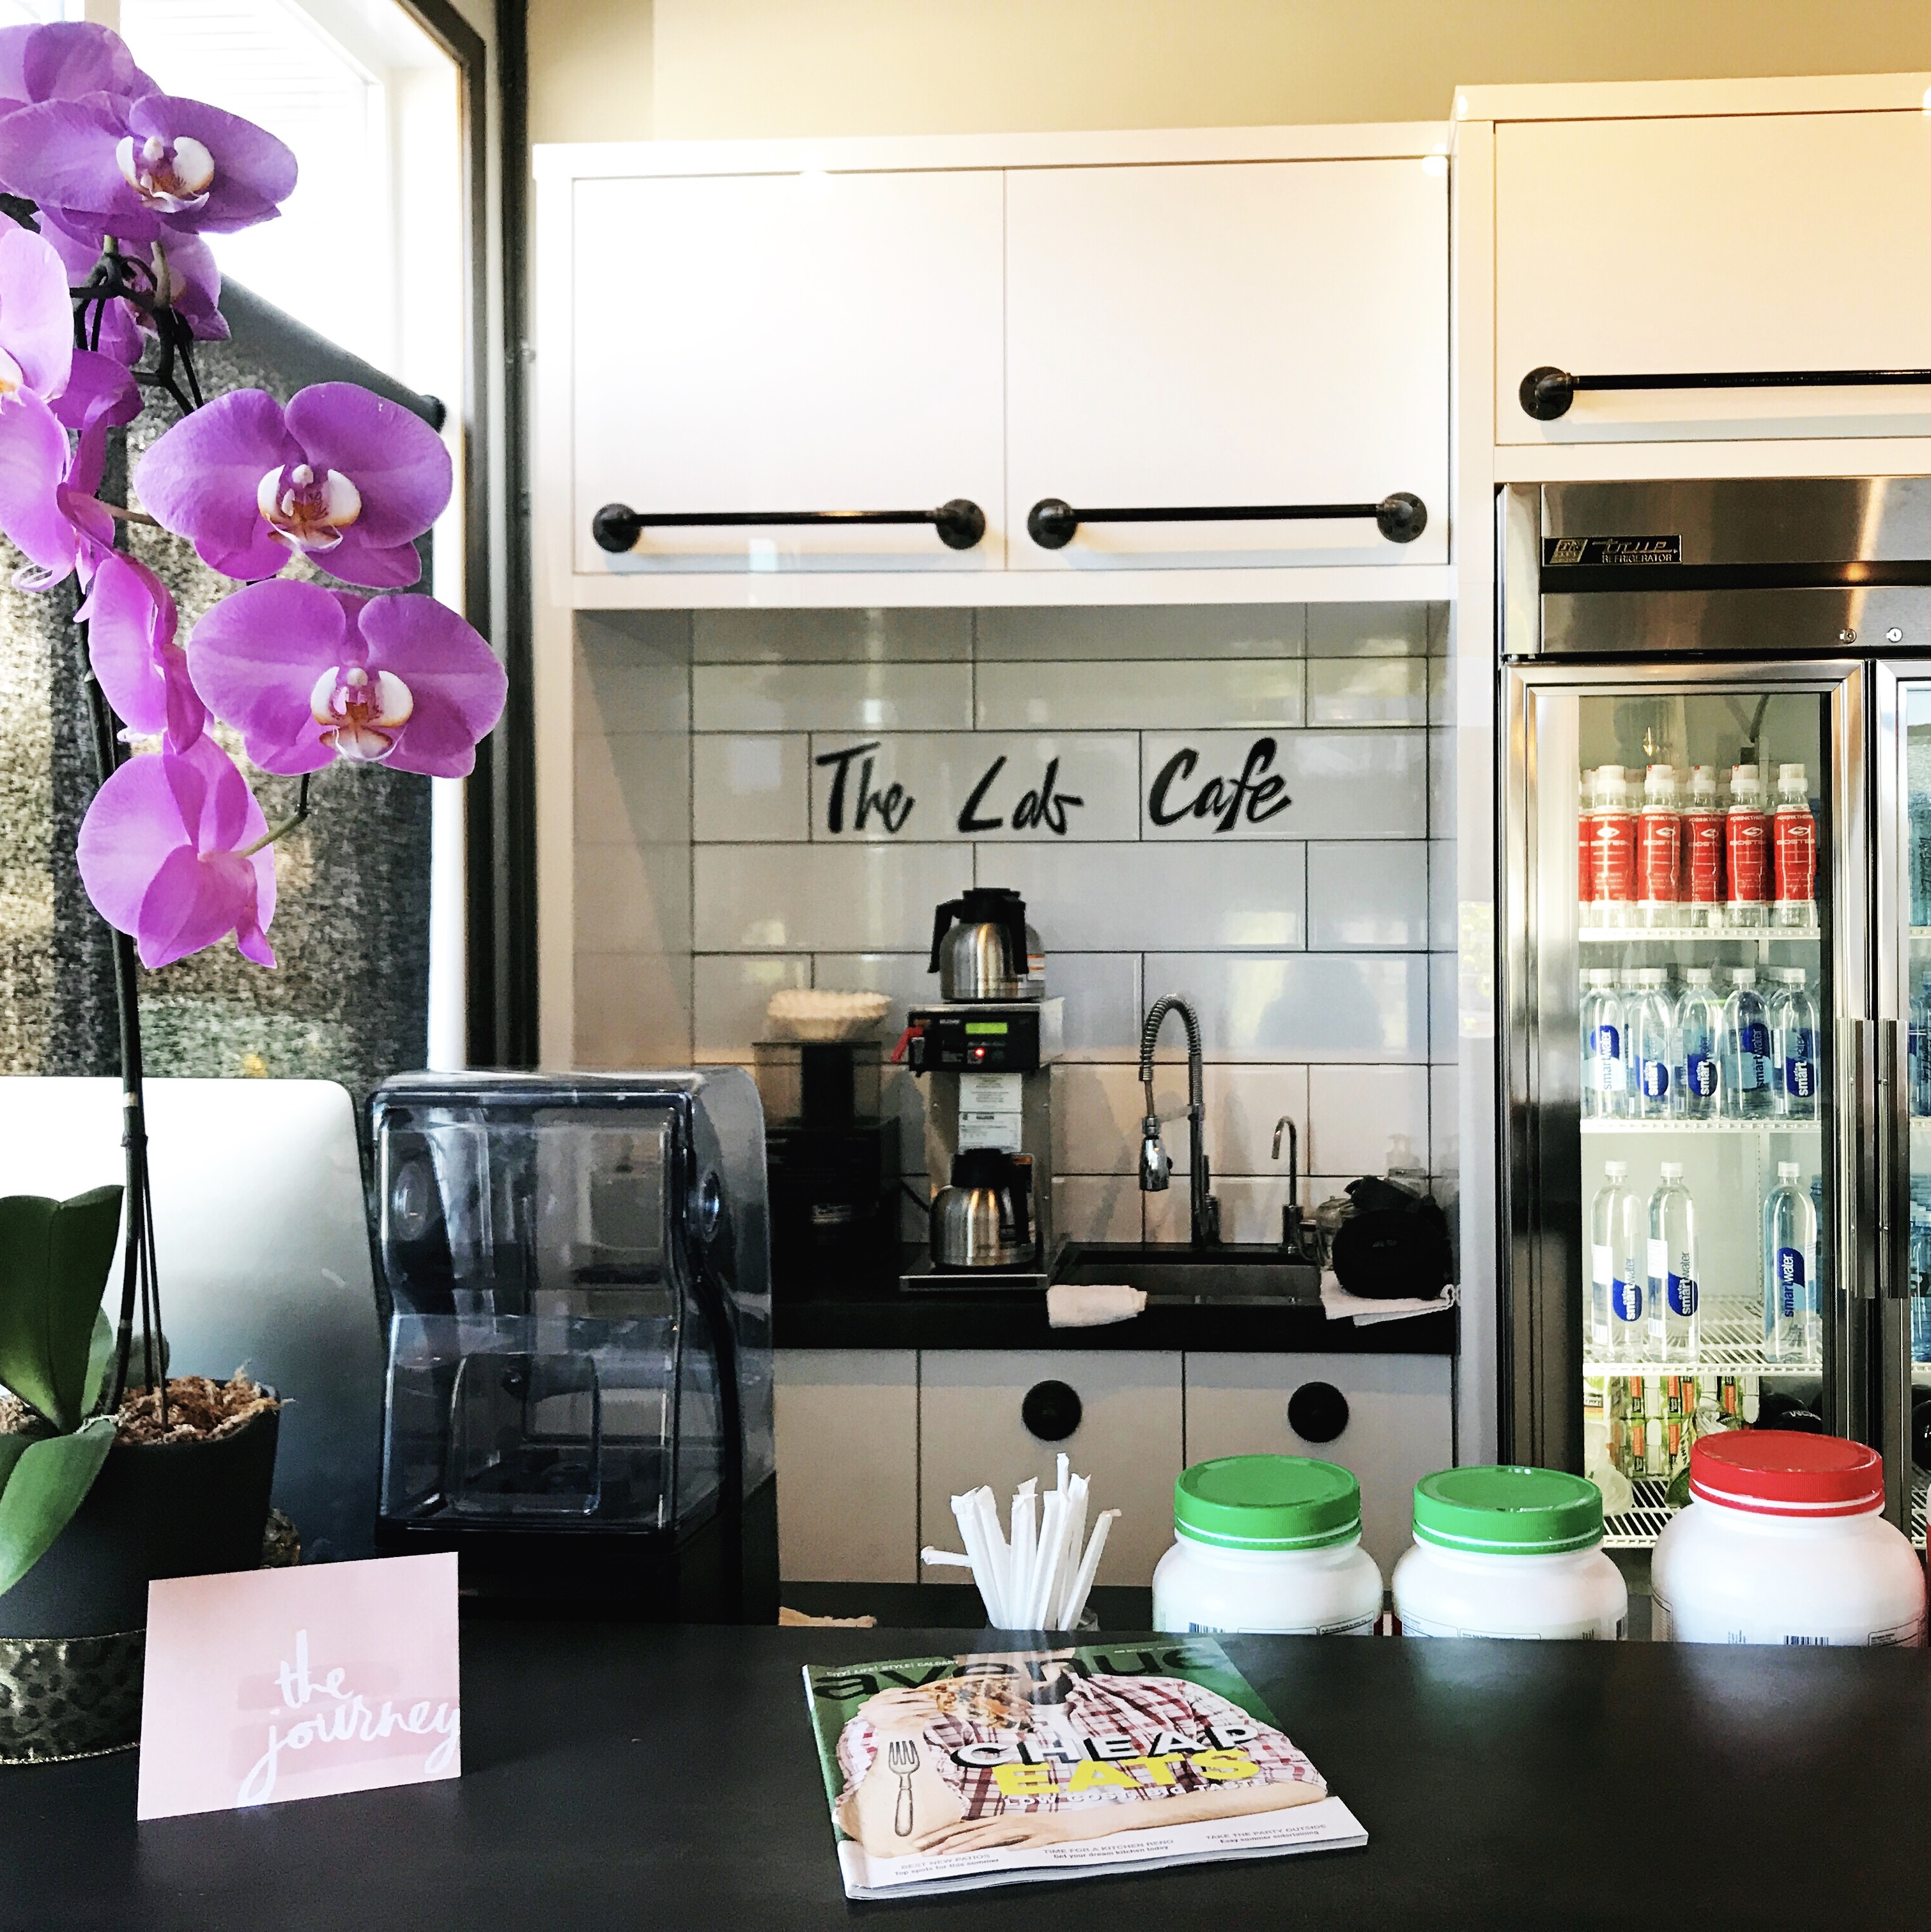 The Lab Cafe